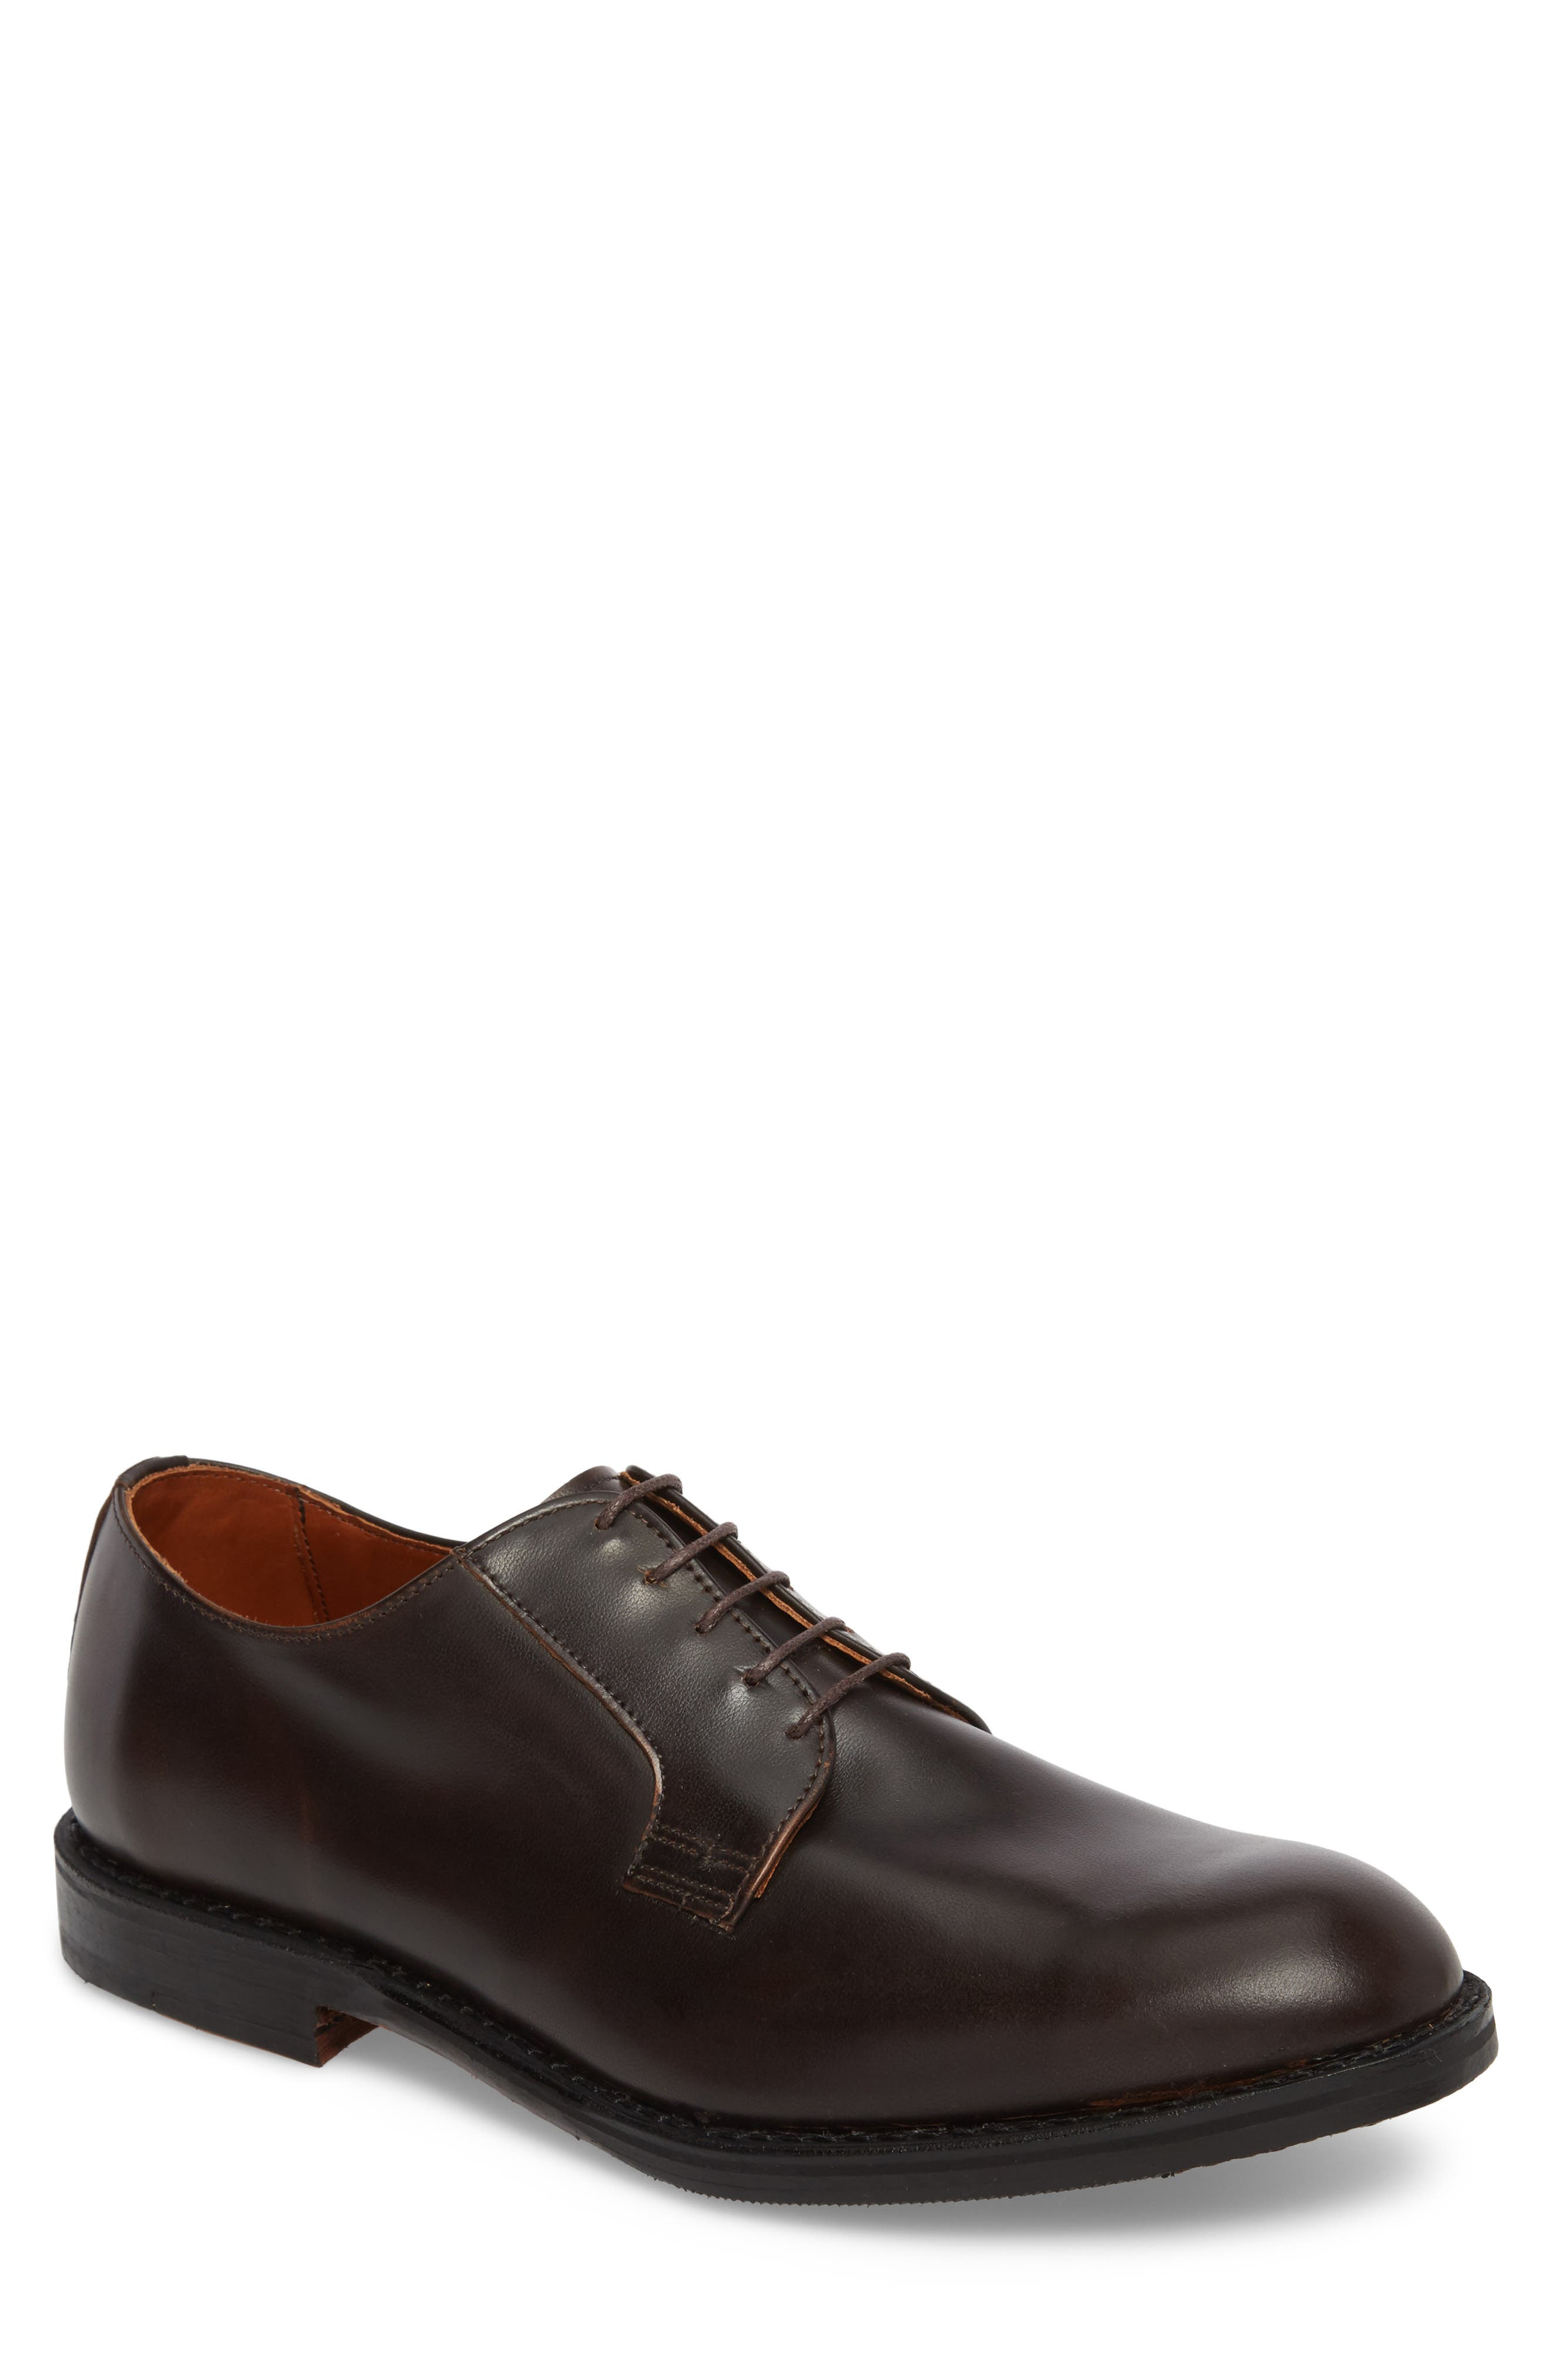 Whitney Plain Toe Derby,                         Main,                         color, Brown Leather